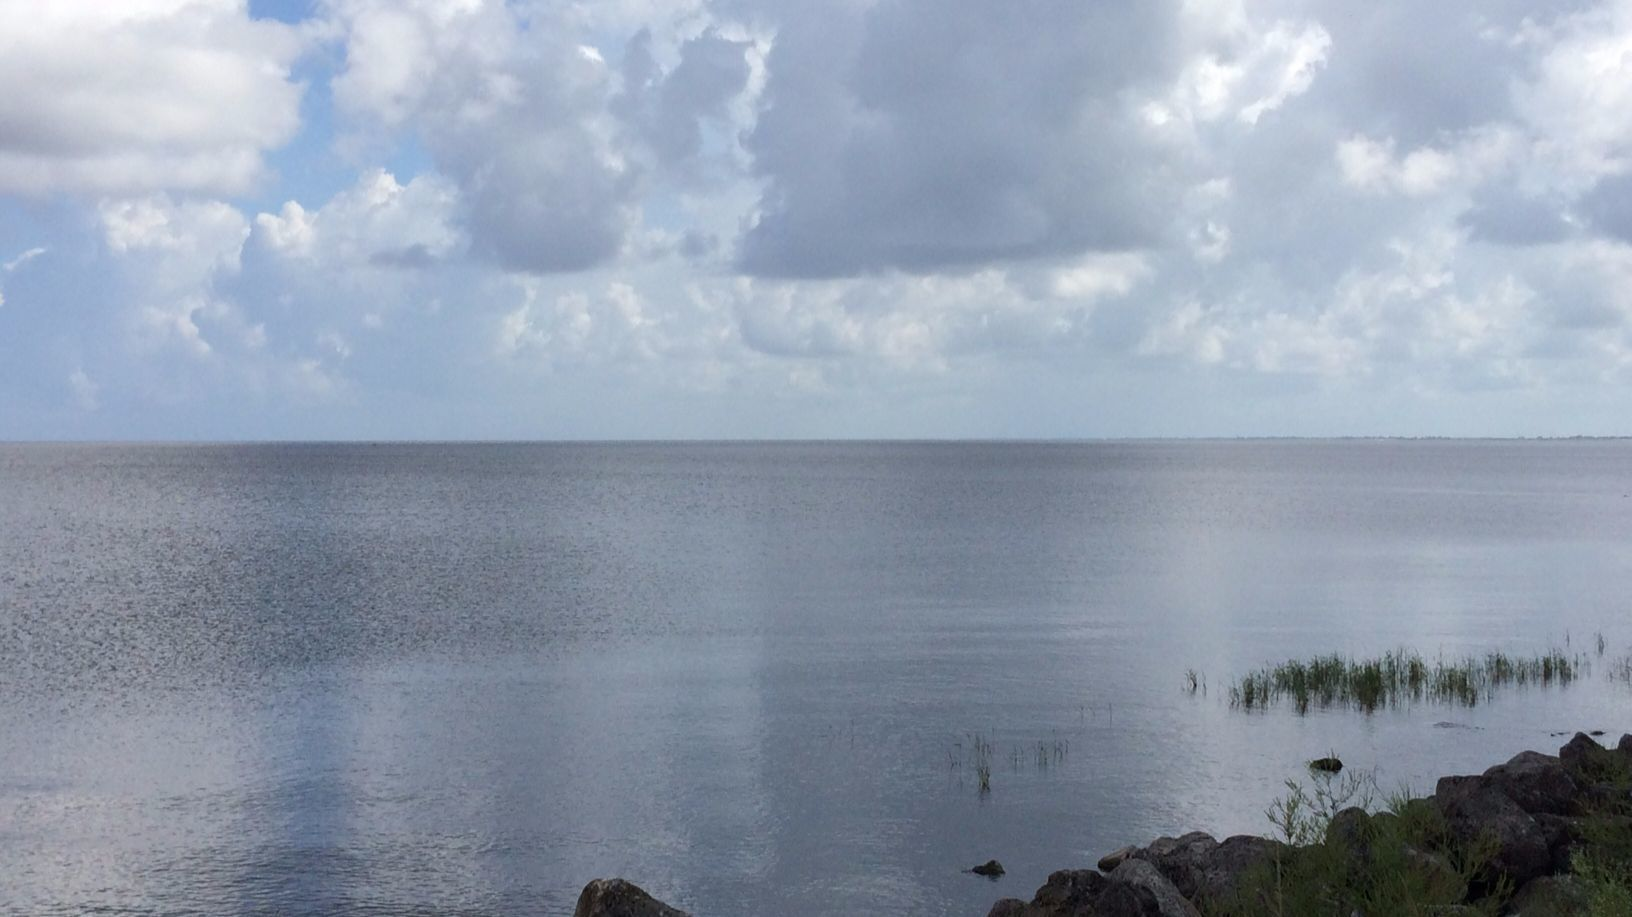 Emergency Pumping Into Lake Okeechobee Ends Pollution